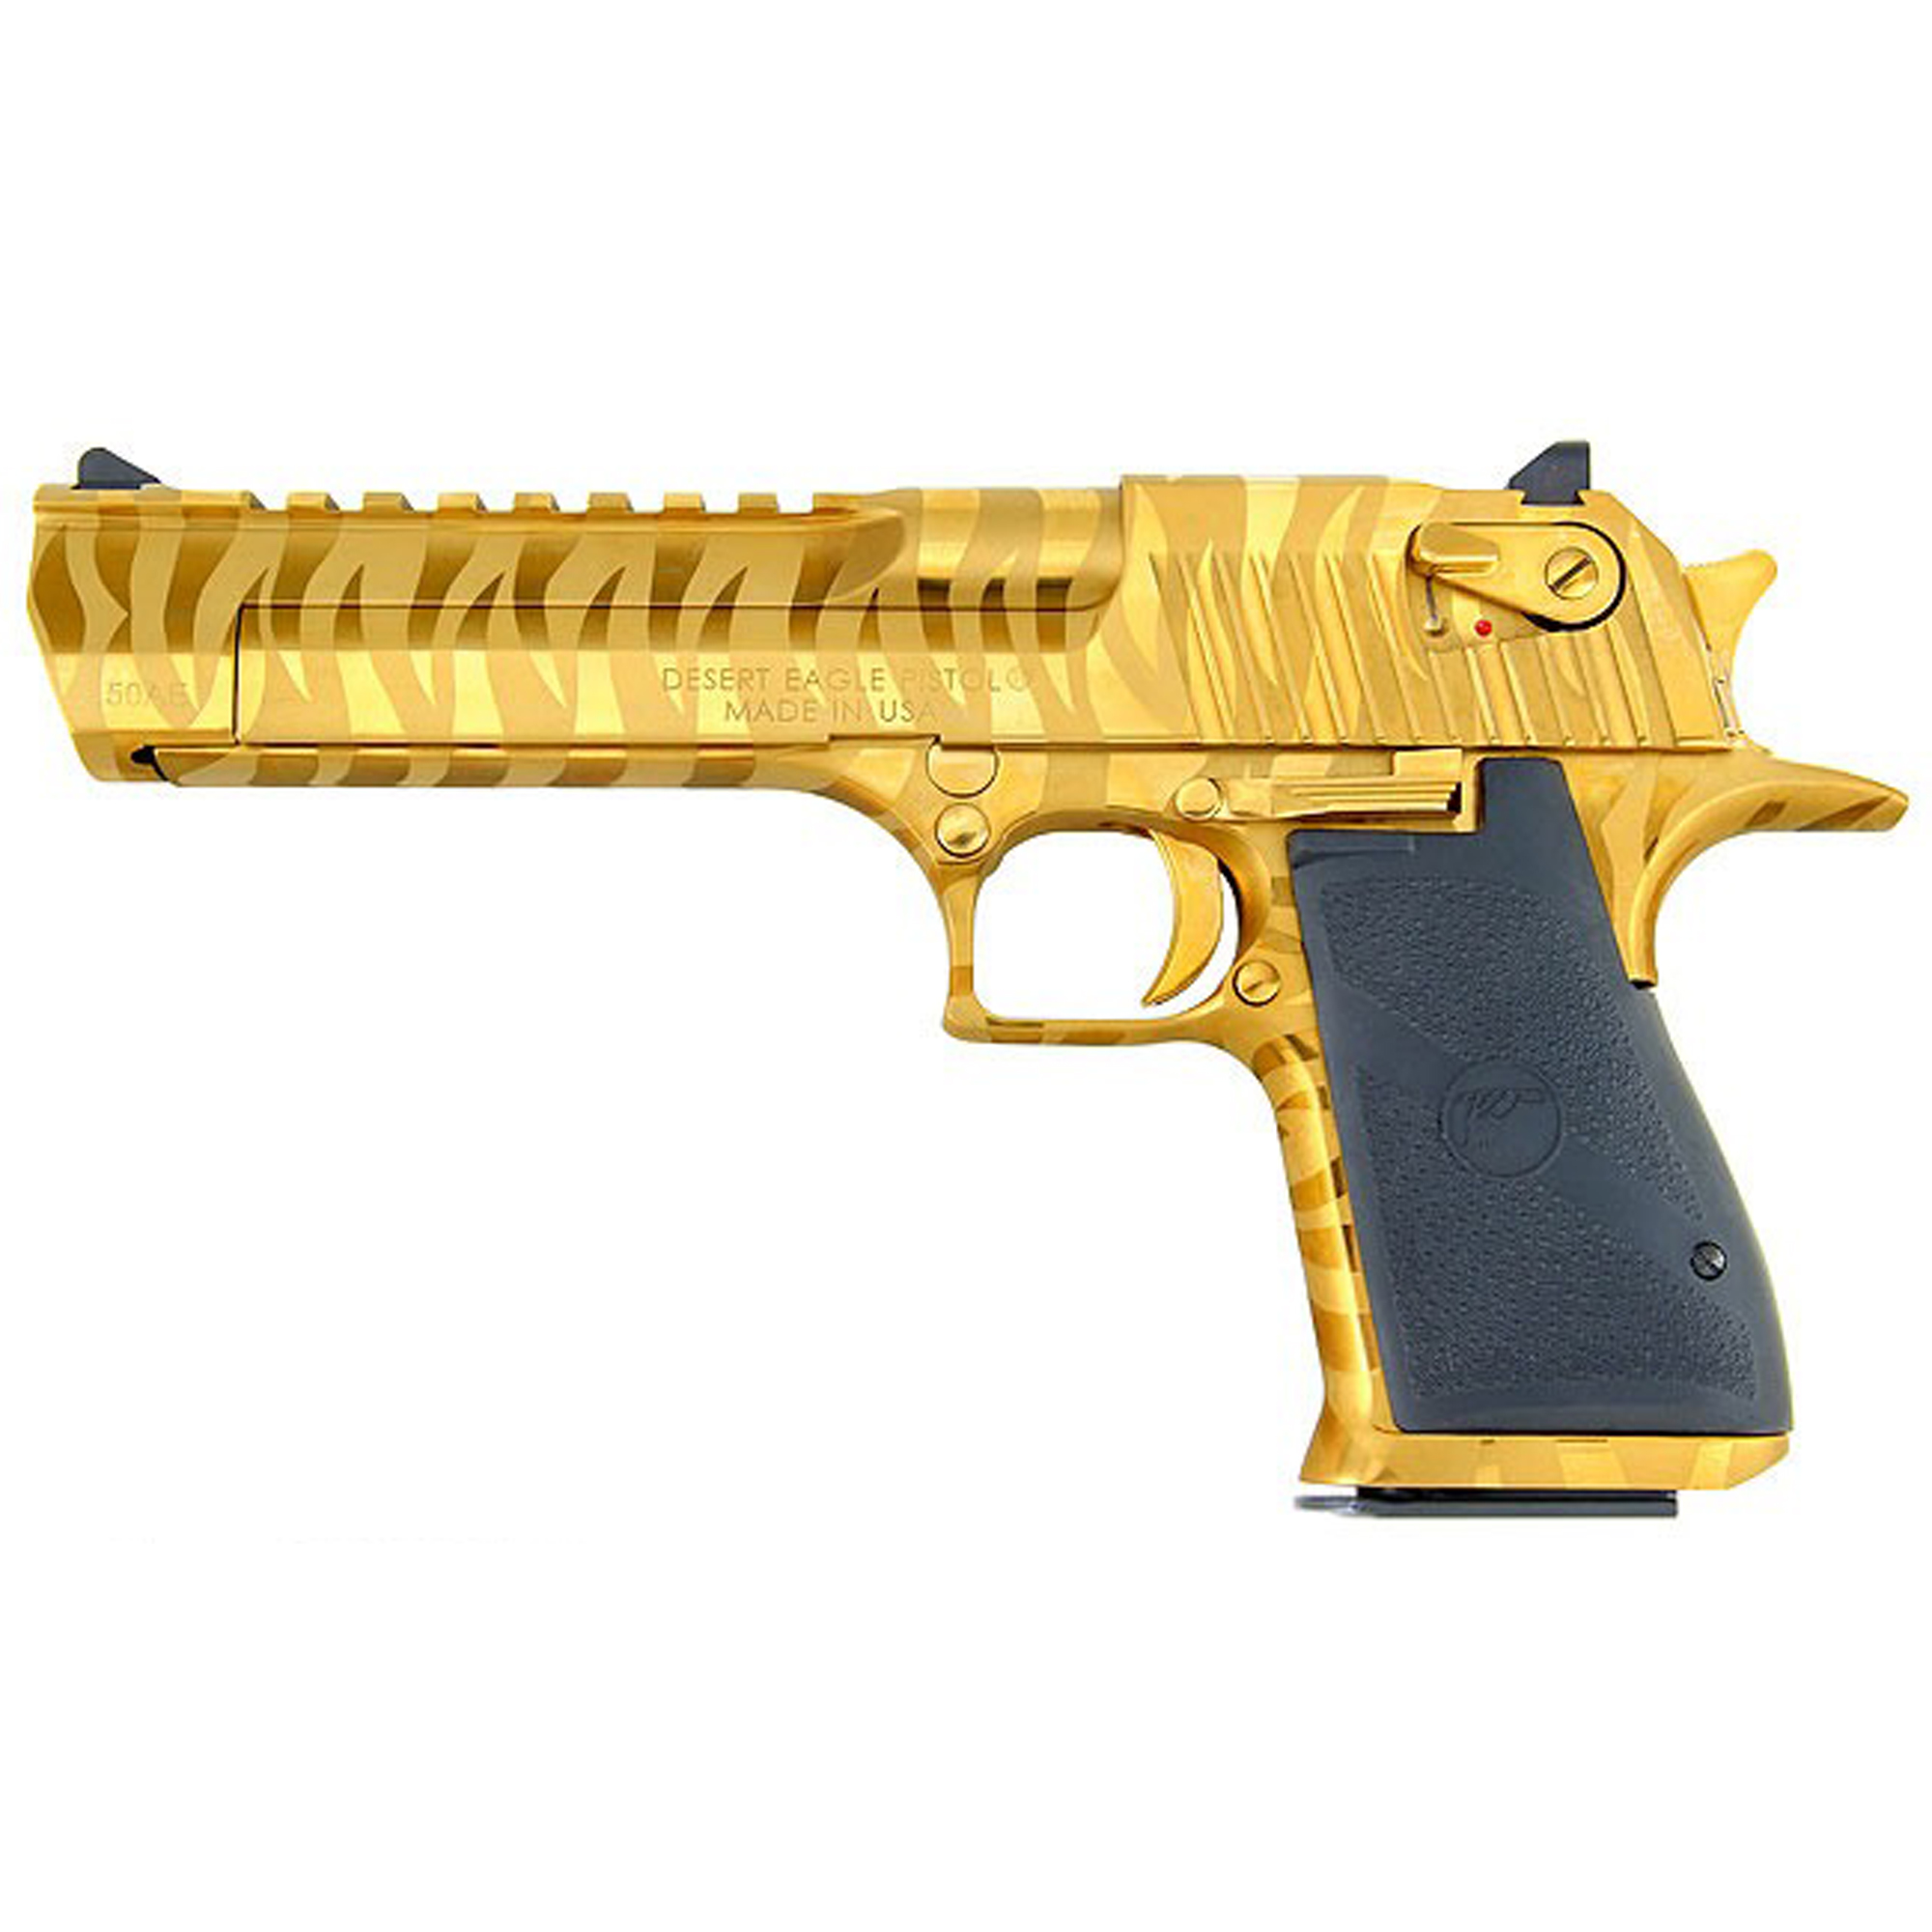 """After 25 years of being accessorized"""" customized and re-imagined in countless movies"""" television shows and video games"""" the Desert Eagle Pistol has emerged as a pop-culture icon. You can customize your Desert Eagle Pistol with a variety of impressive finishes to add your own distinctive twist to this timeless firearm. All models feature a full picatinny style accessory rail on the barrel from the end of the chamber to right behind the front sight and standard ambidextrous safeties. Comes with one 8-round magazine."""